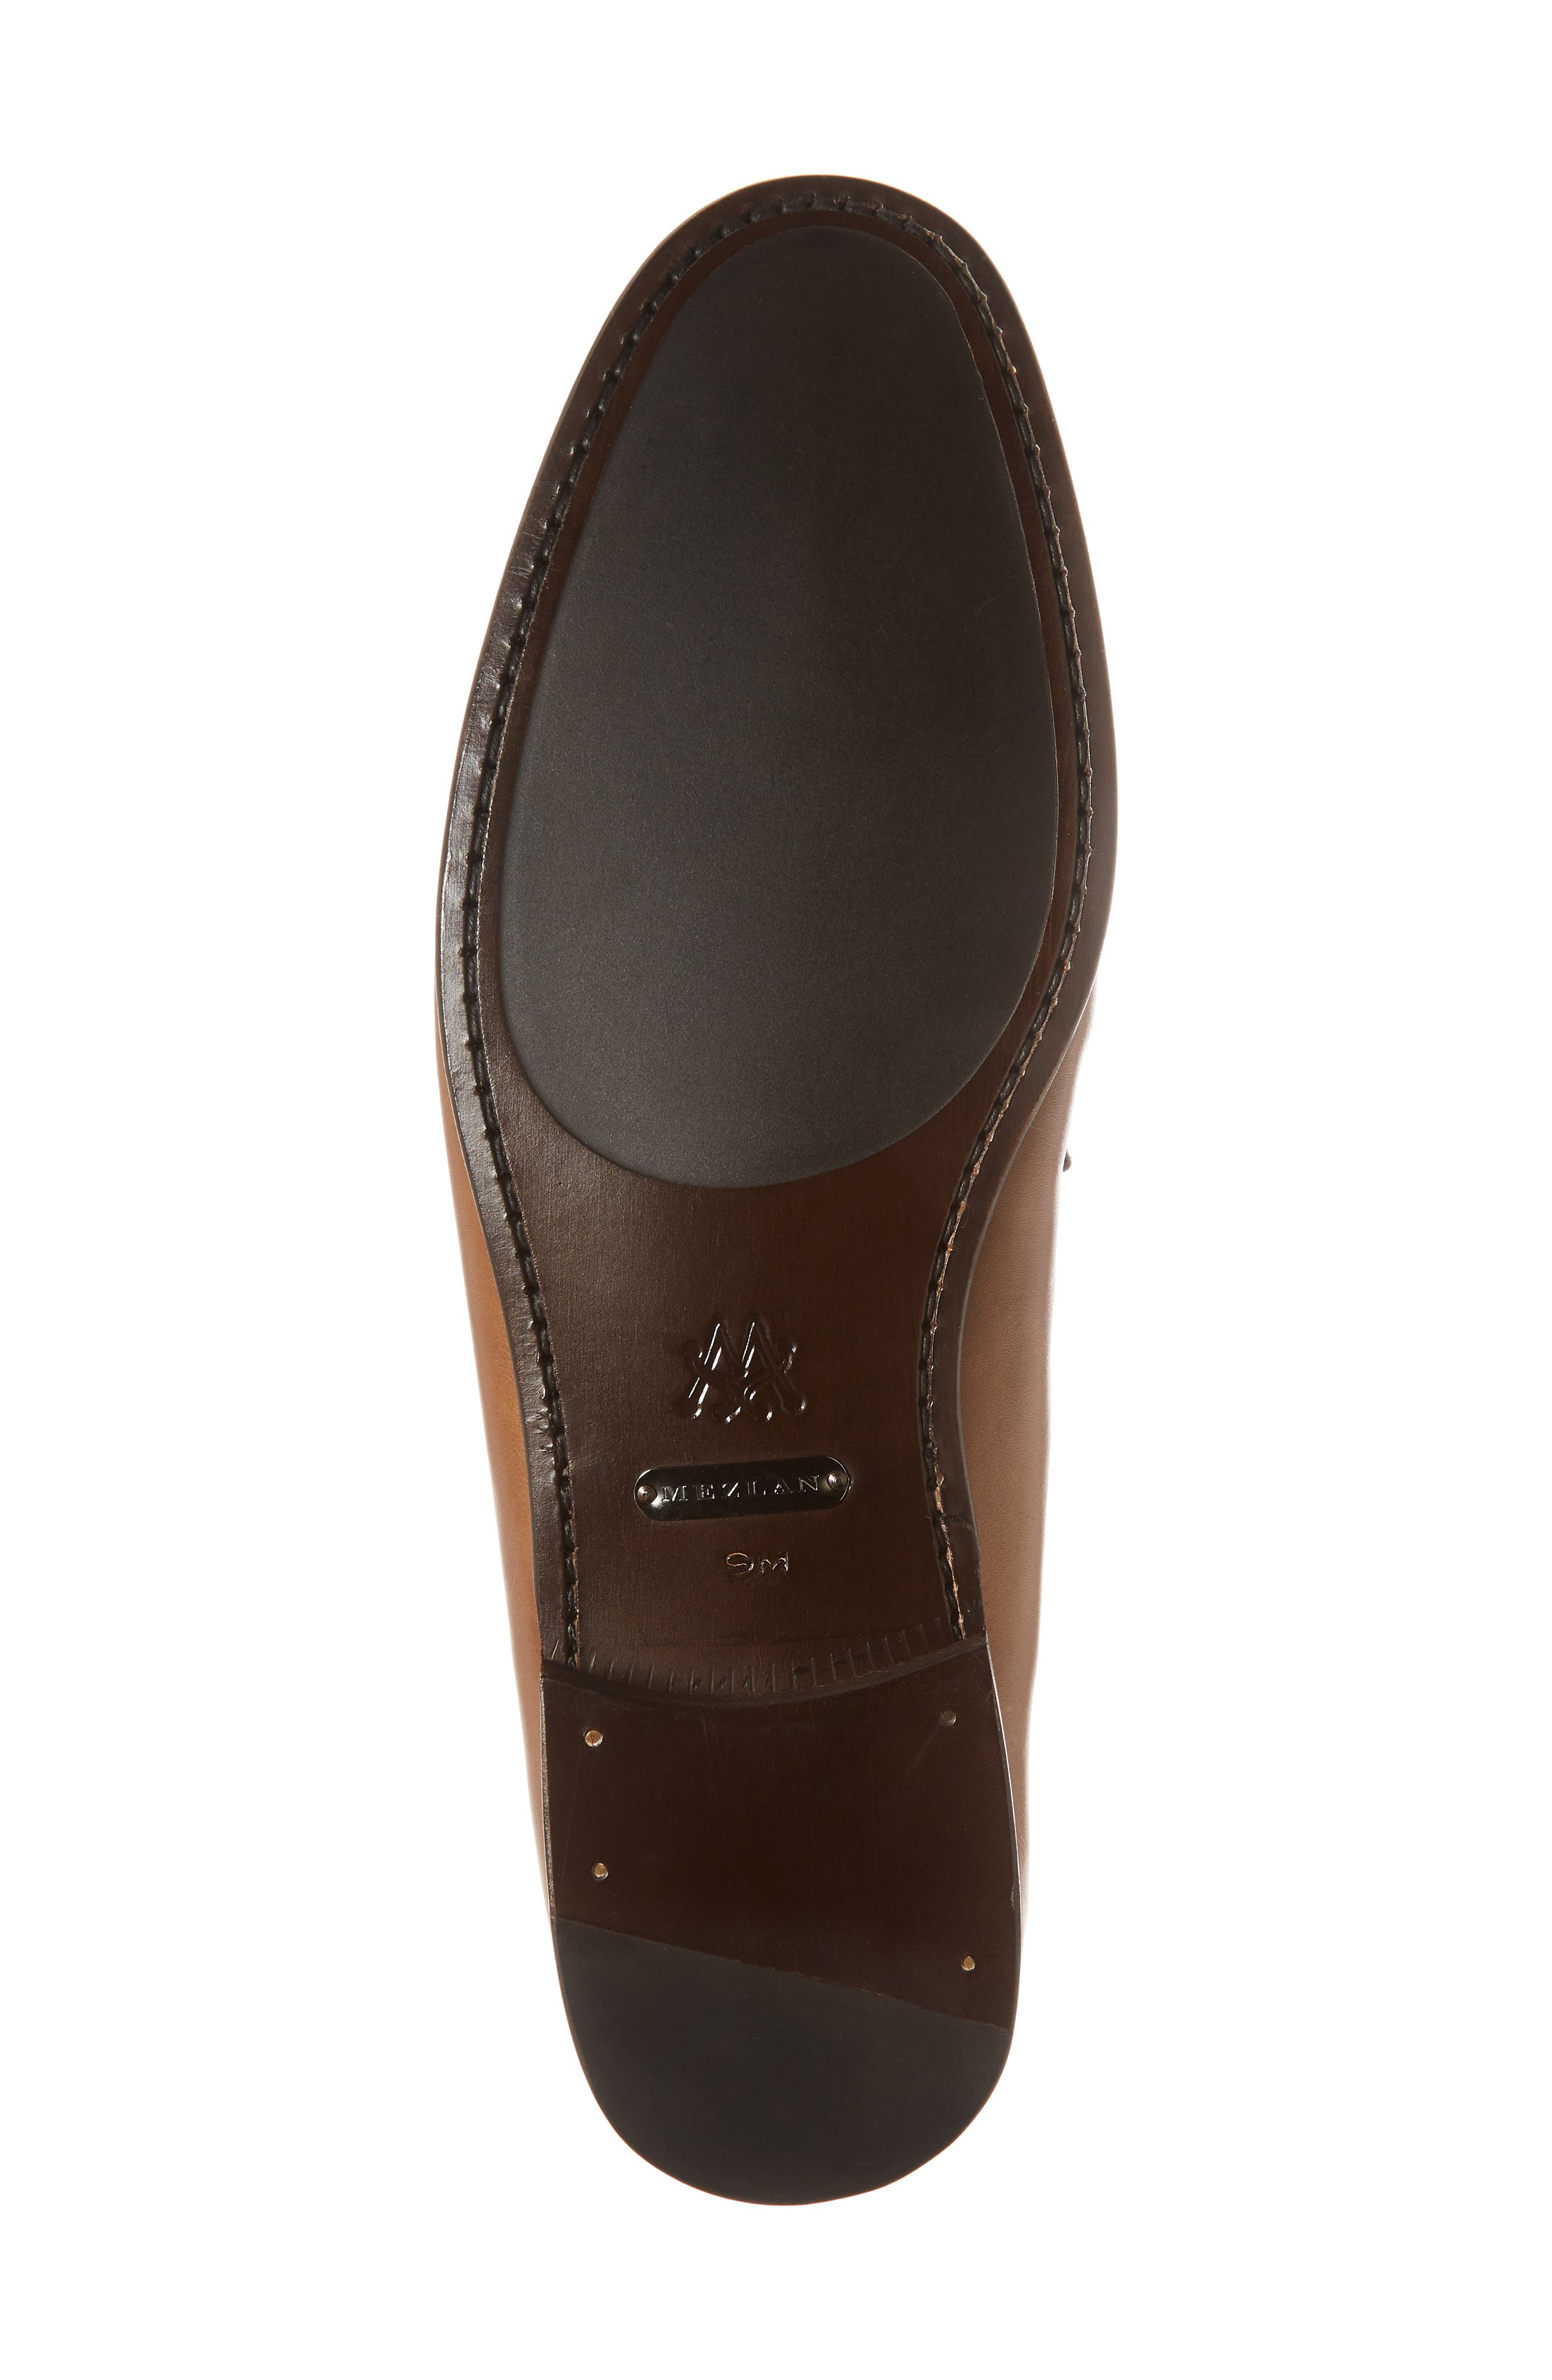 Jano Embossed Moc-Toe Loafer,                             Alternate thumbnail 6, color,                             Cognac Leather